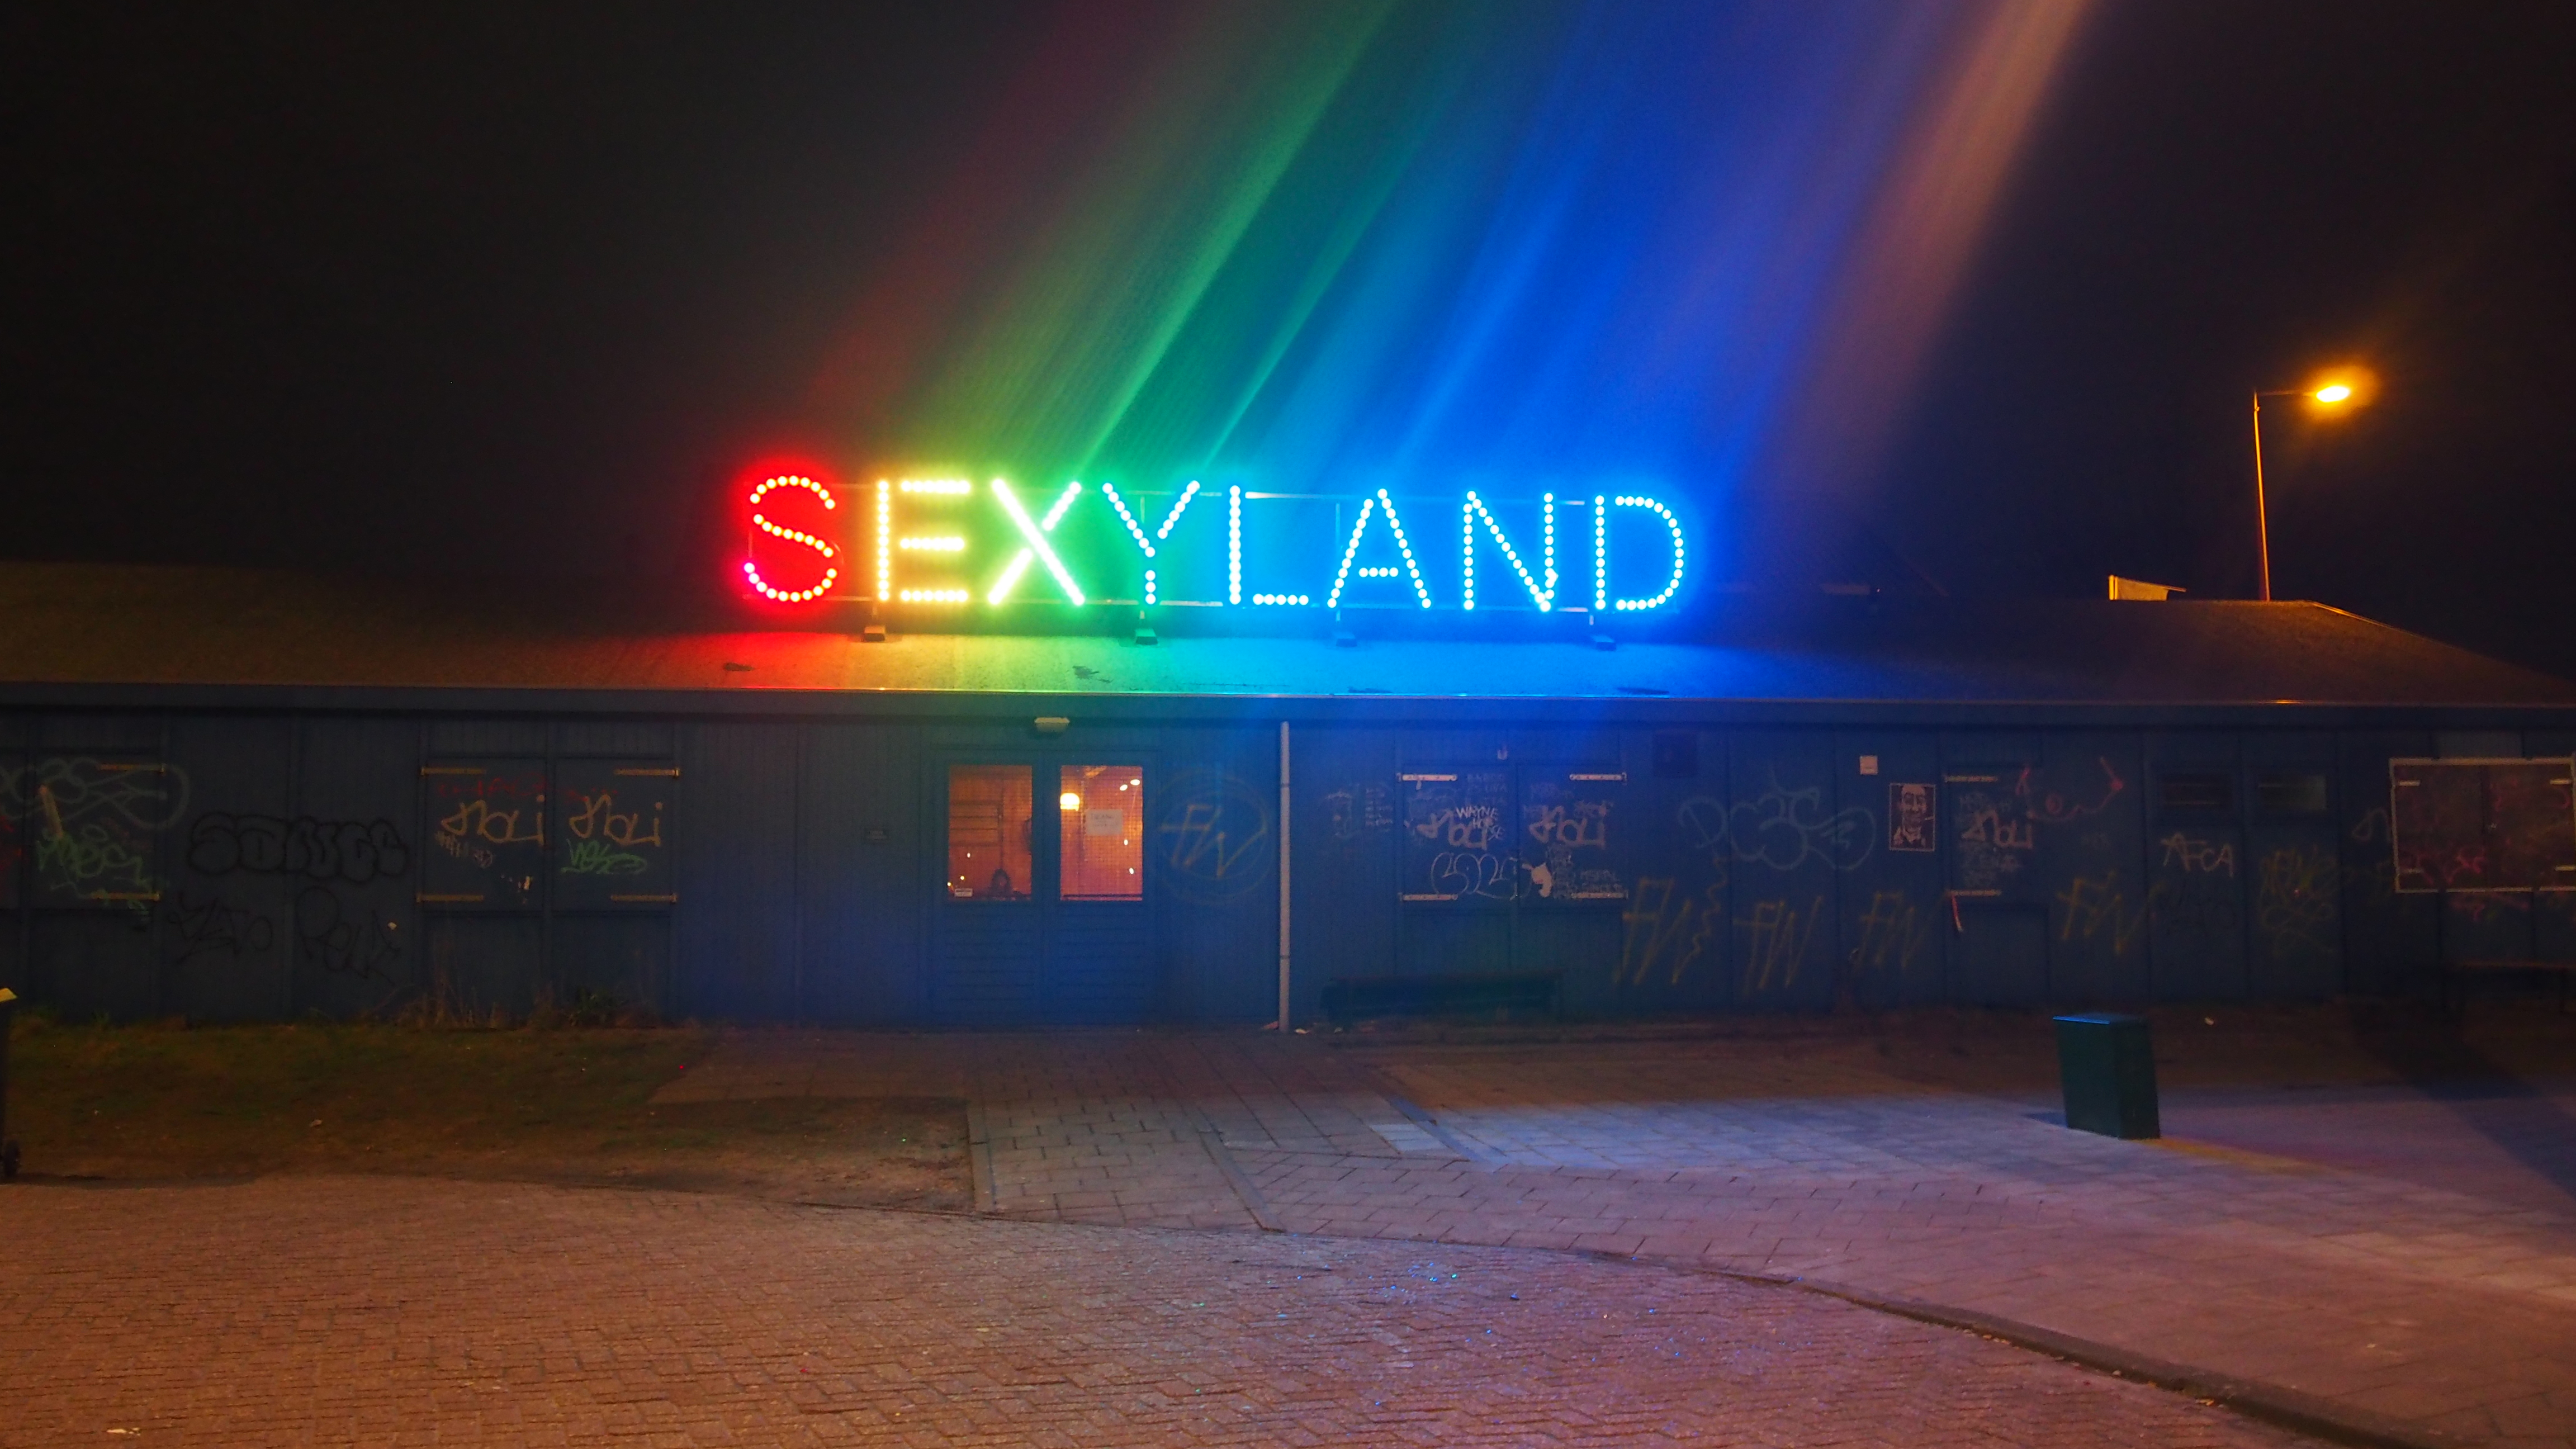 Sexy land images